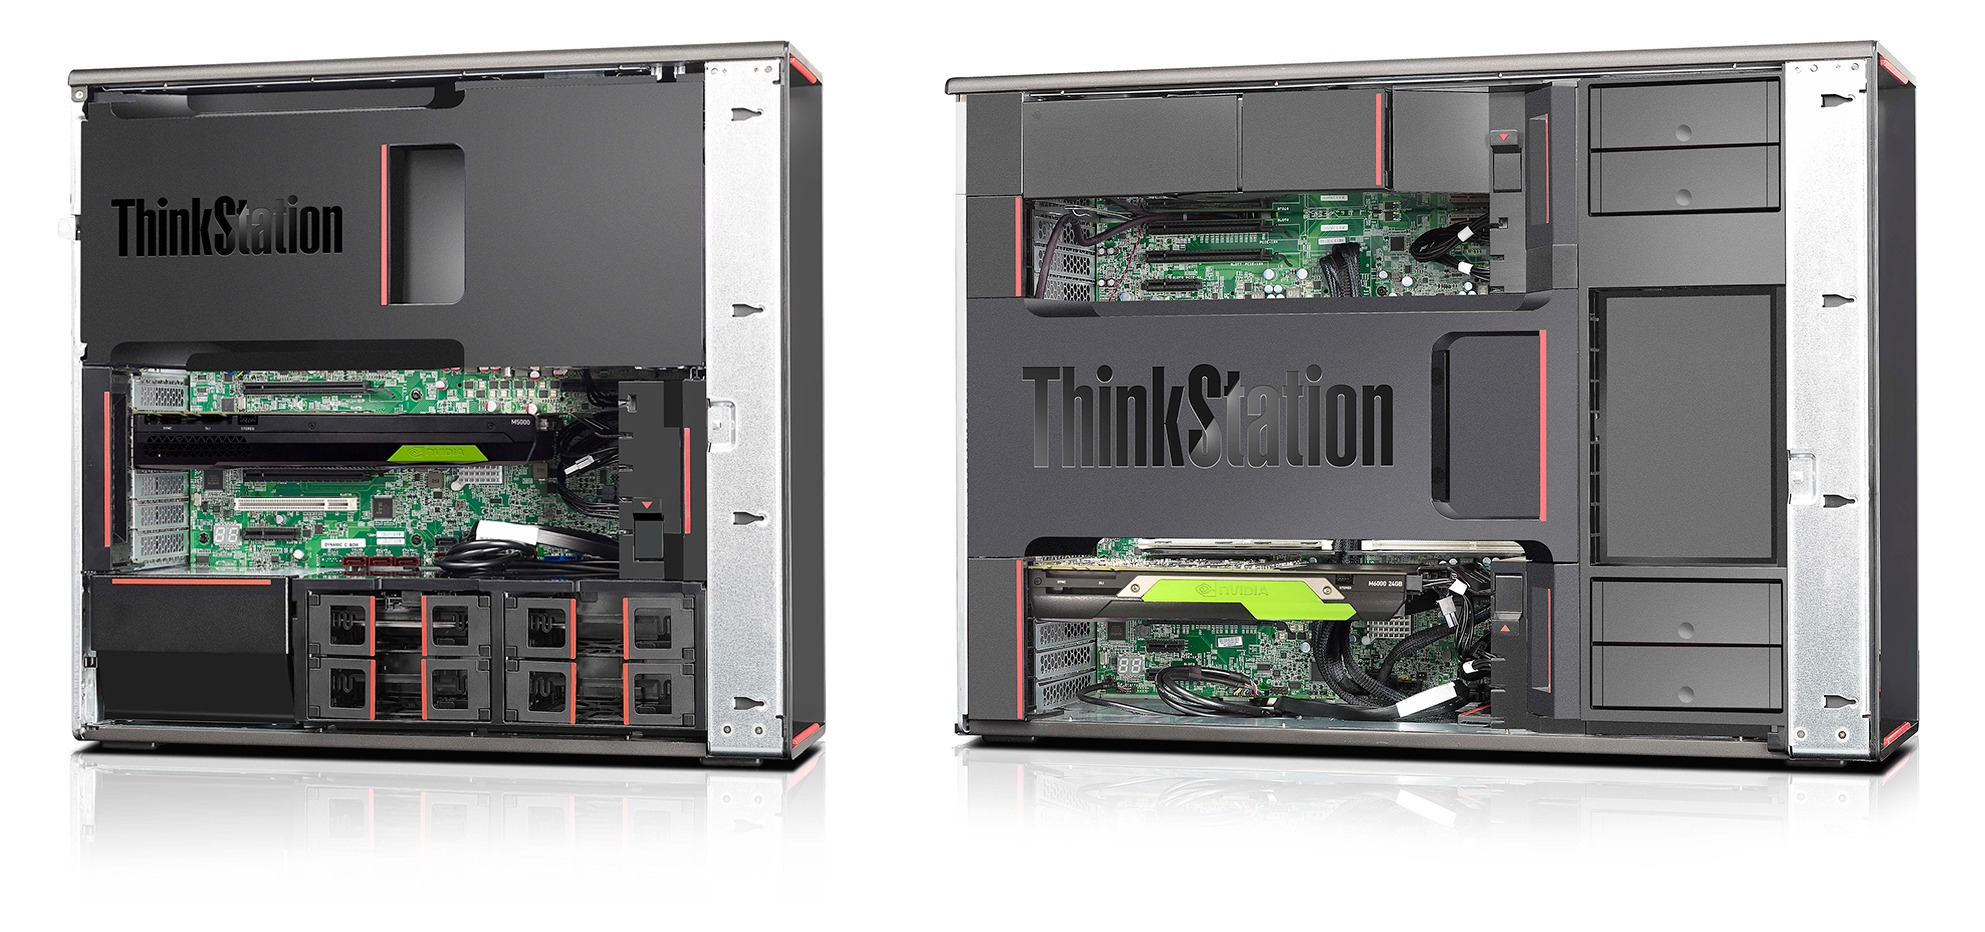 lenovo-thinkstation-p710-p910-comparison-02